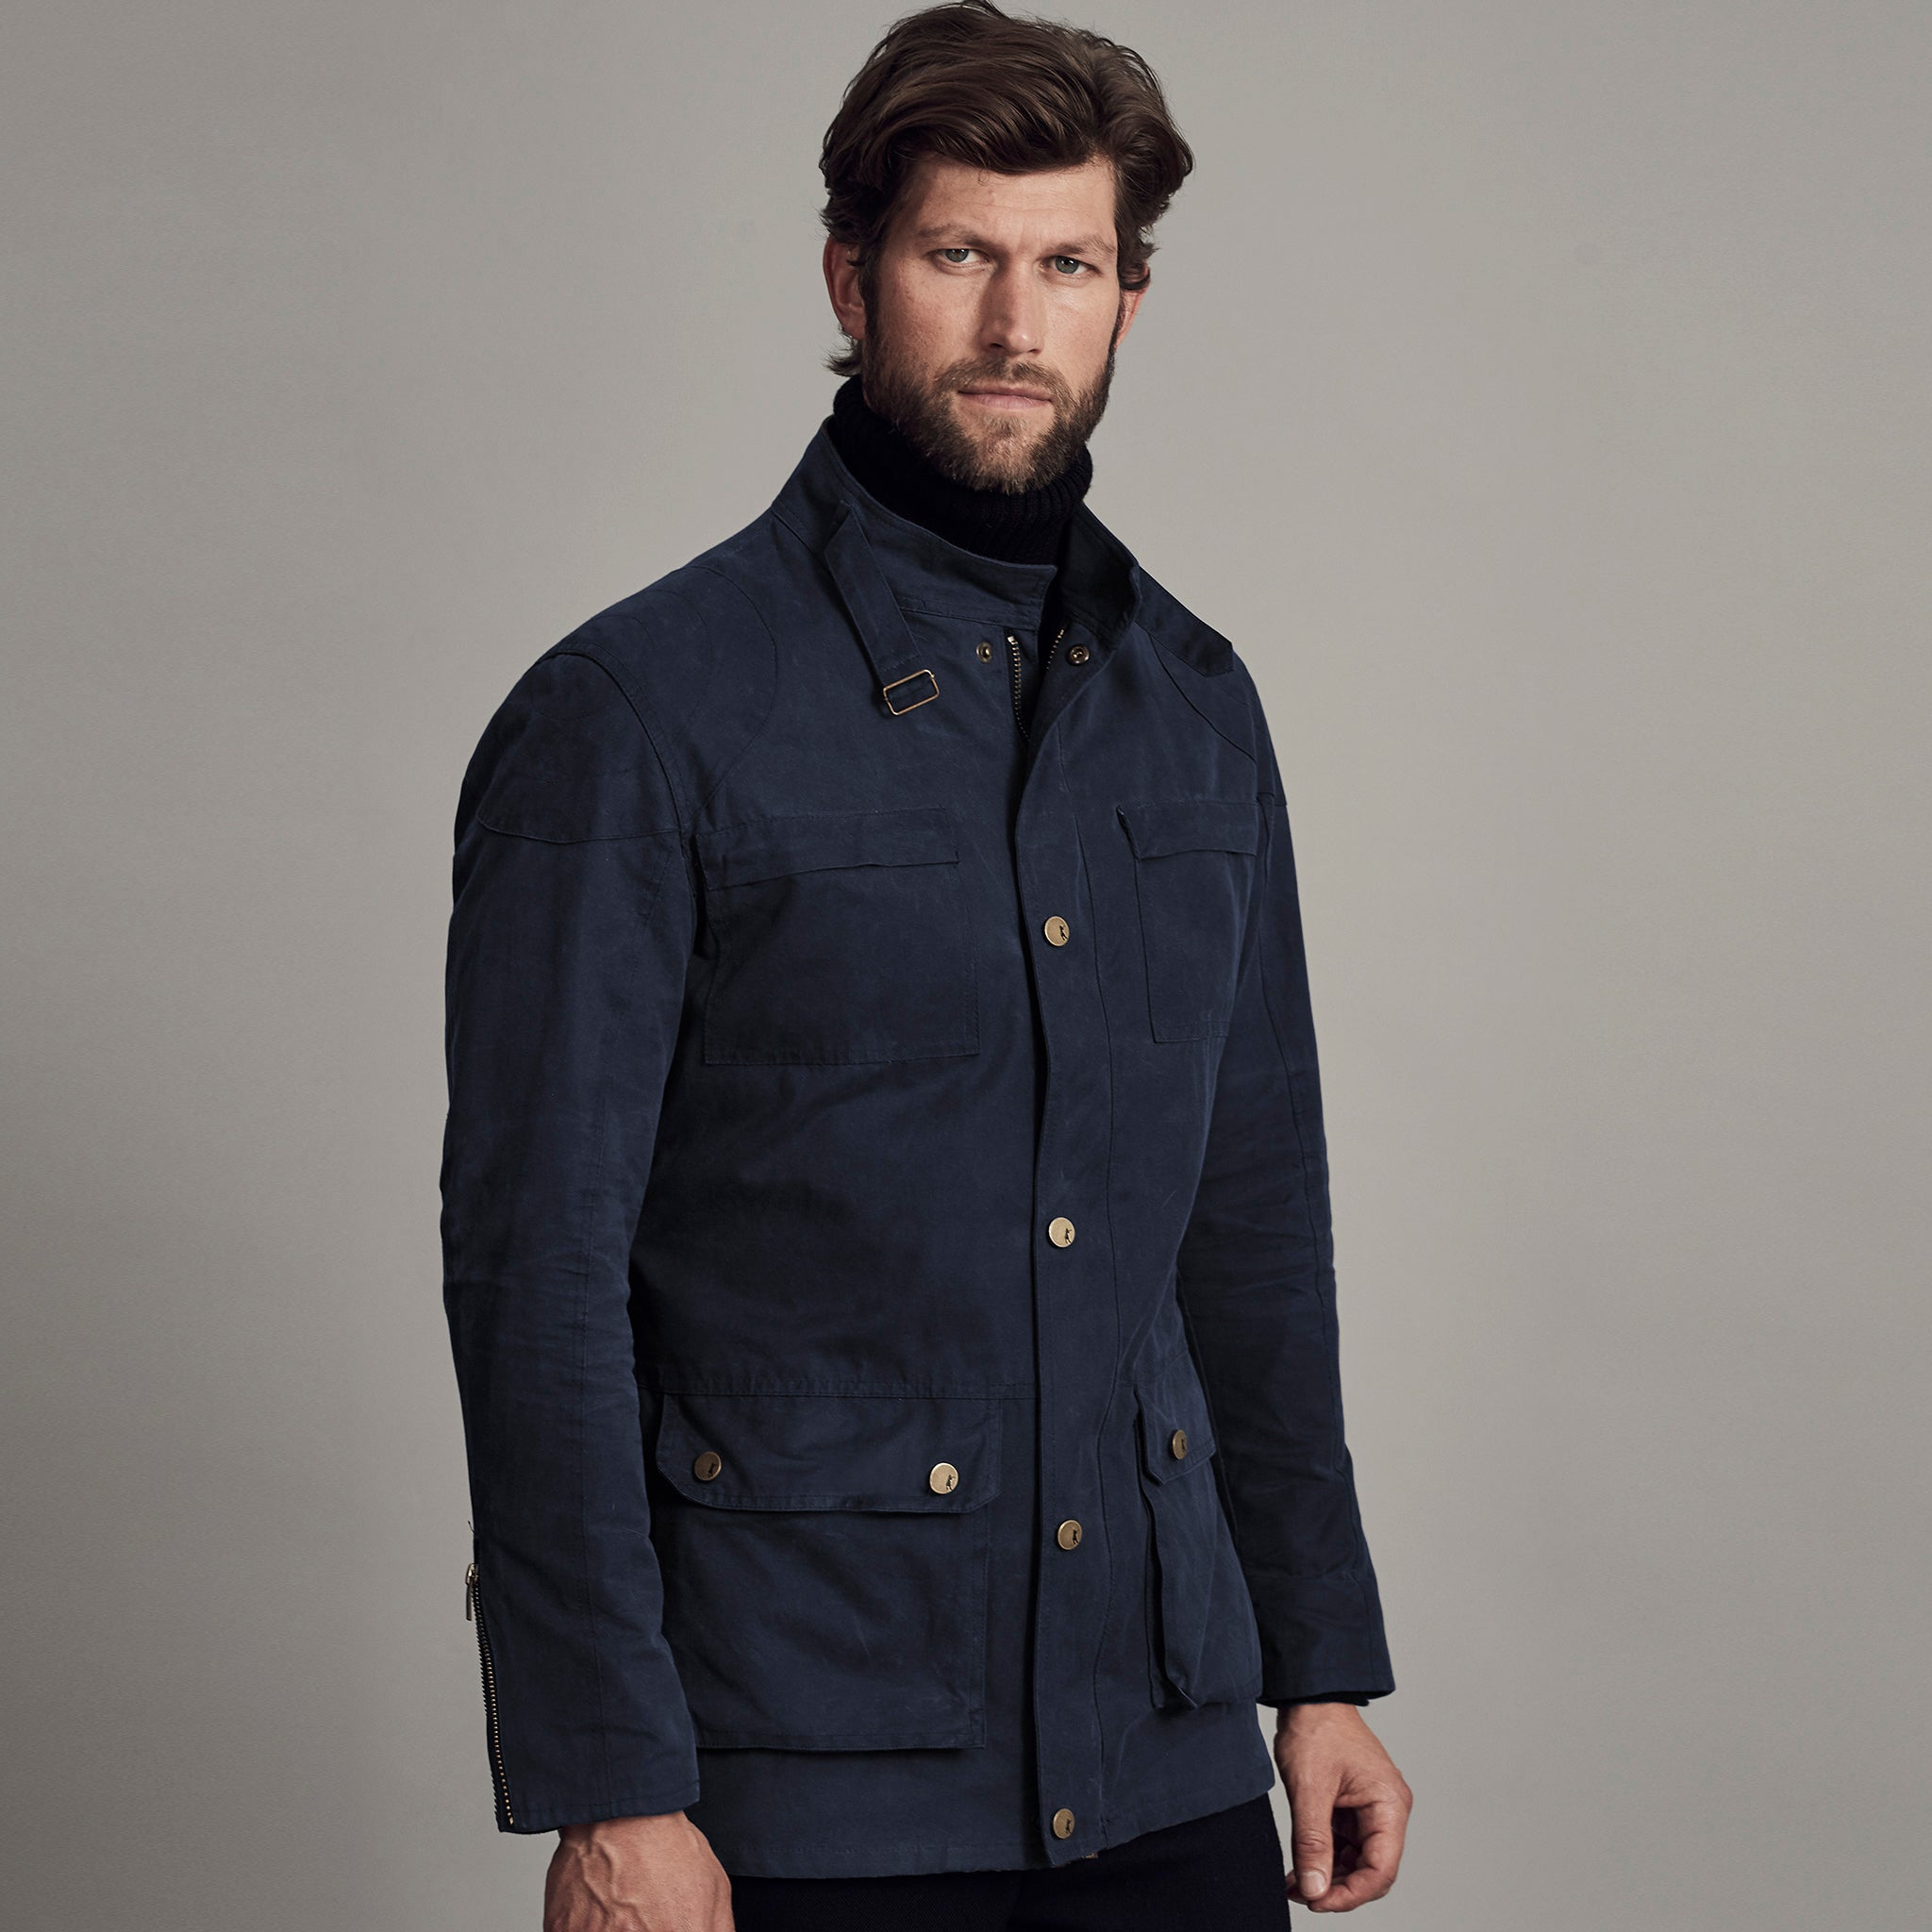 Archie Foal Men's ANSGAR Wax Cotton Biker Field Jacket in Navy